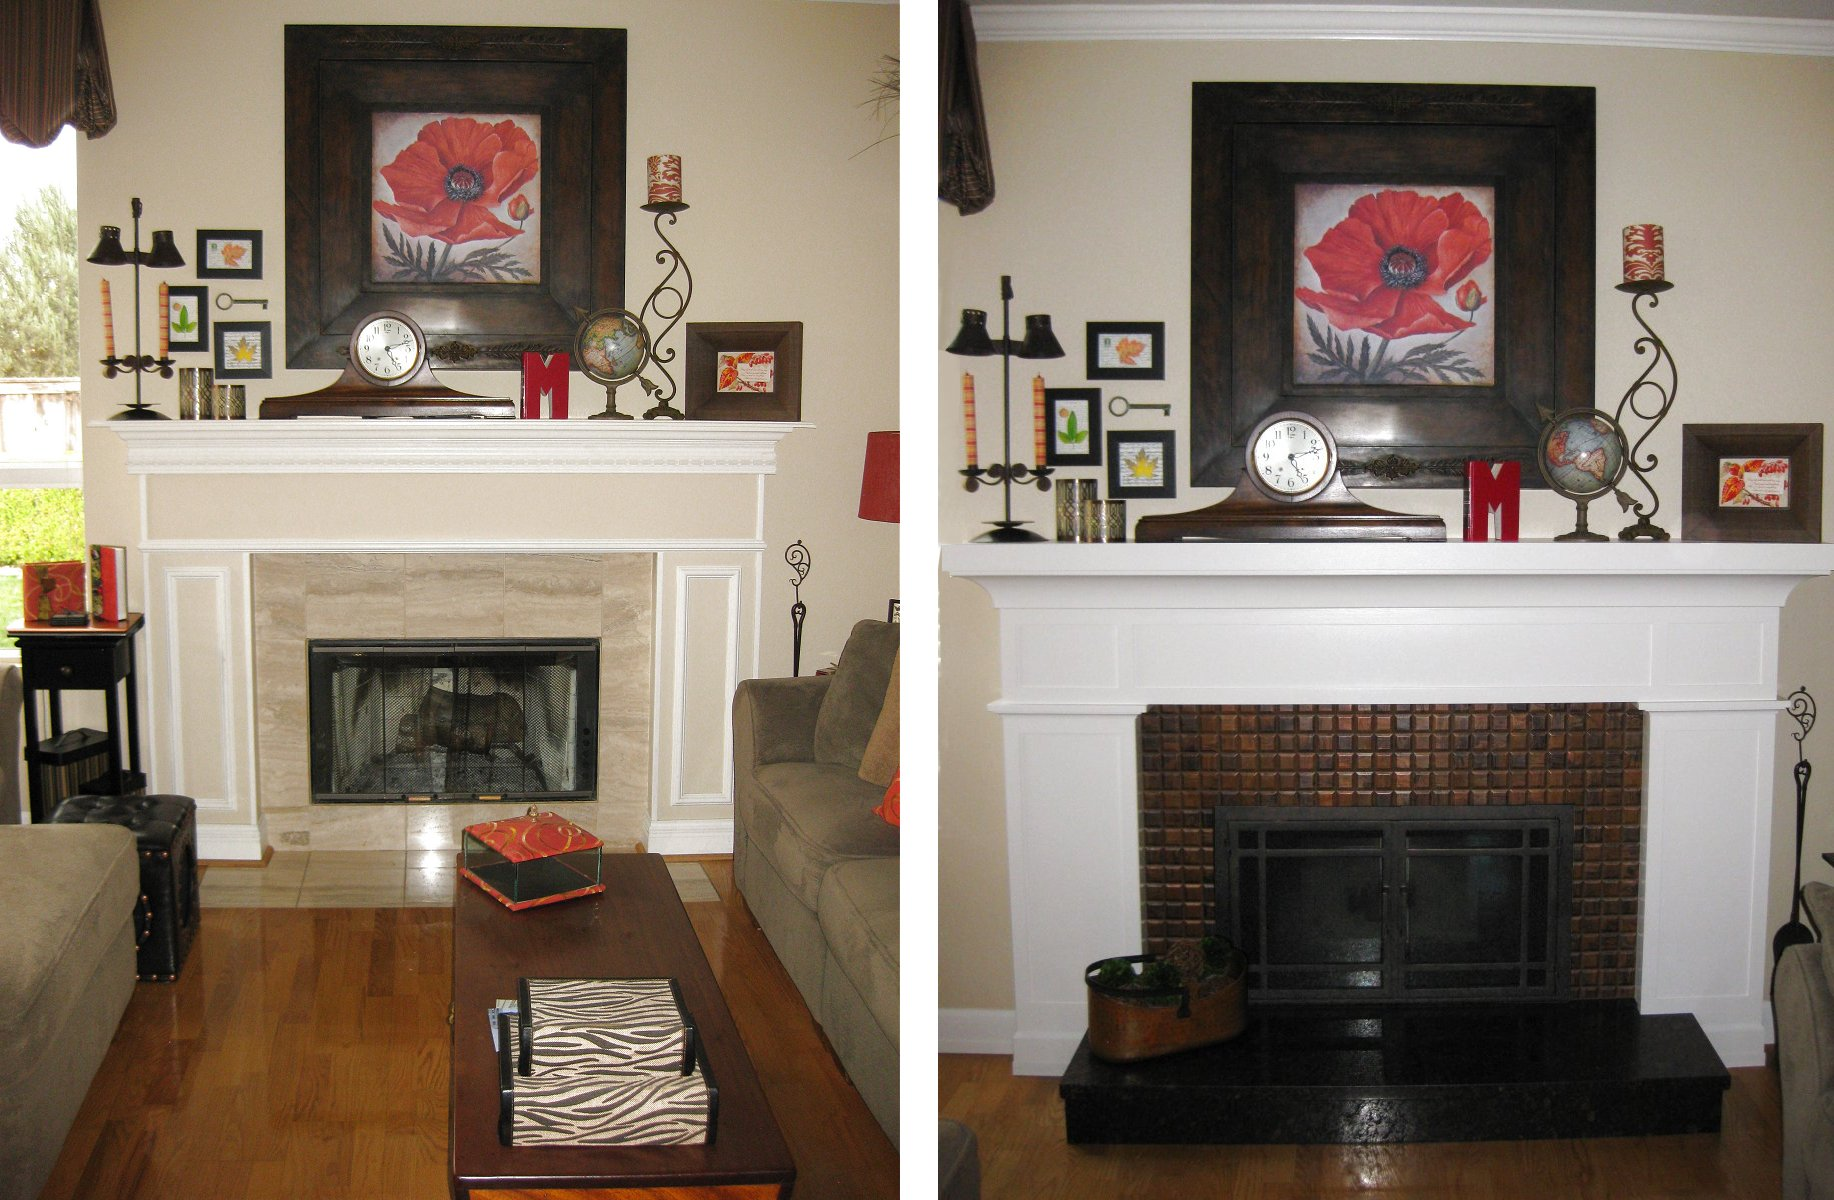 Project of the Month Winner August 2016 Fireplace View